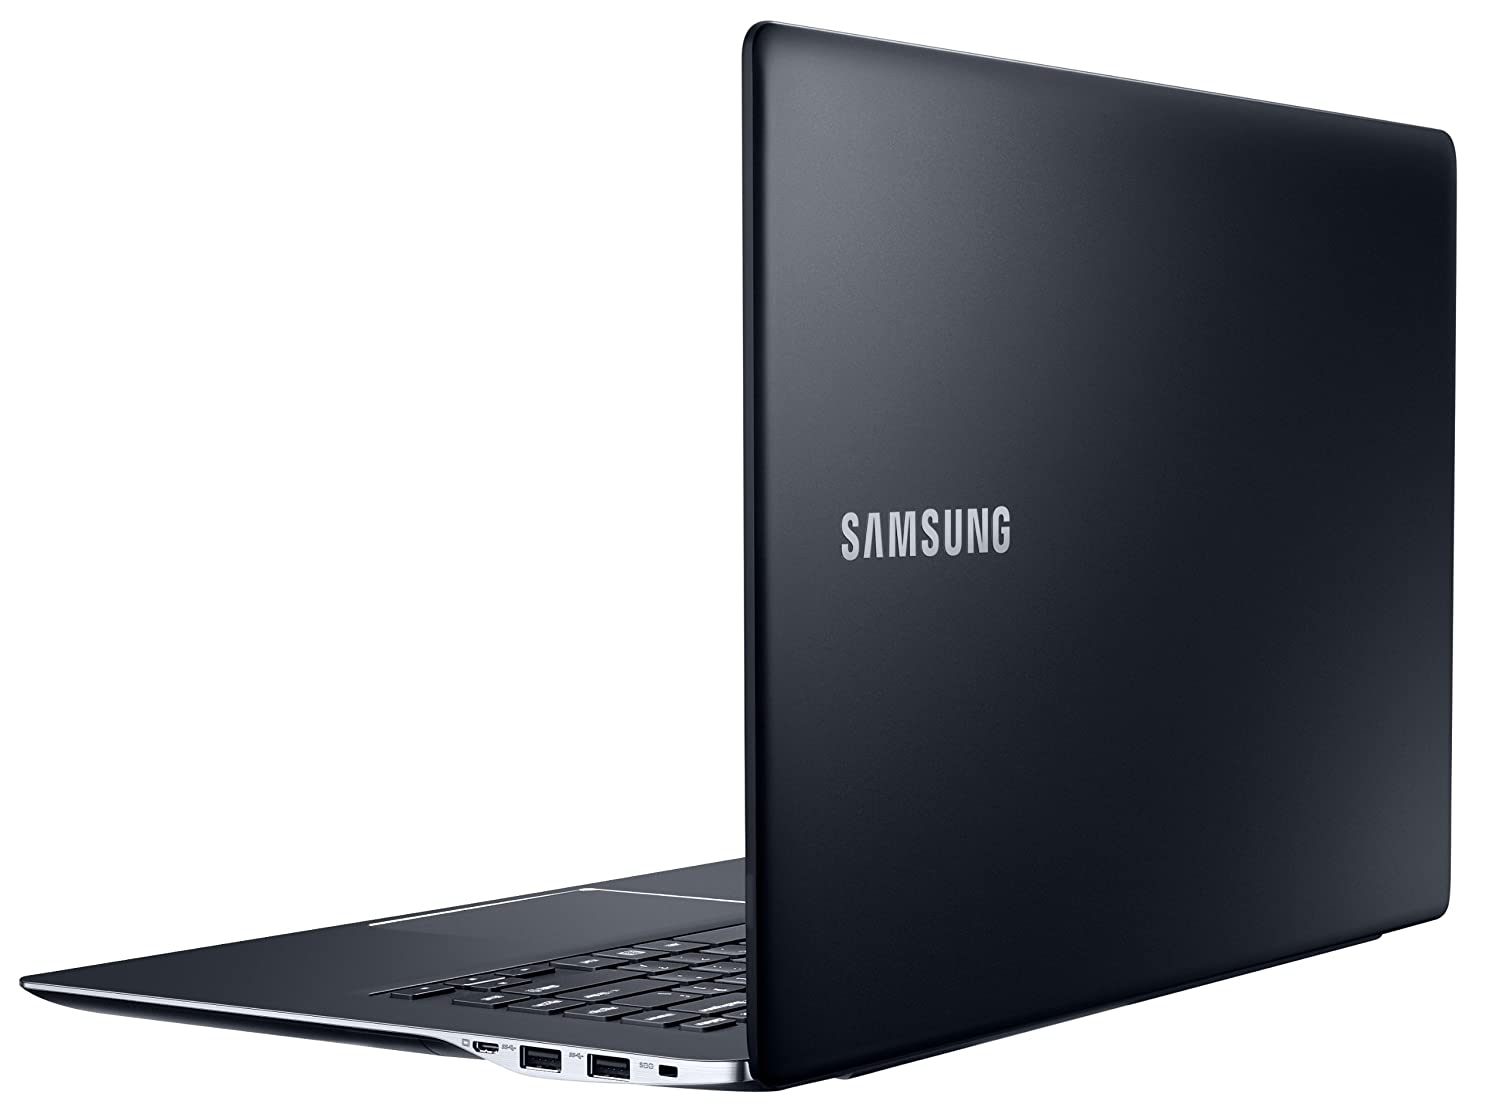 Samsung notebook hoyt6yx - Amazon Com Samsung Ativ Book 9 2014 Edition 15 6 Inch Touchscreen Laptop Intel Core I7 Mineral Ash Black Computers Accessories